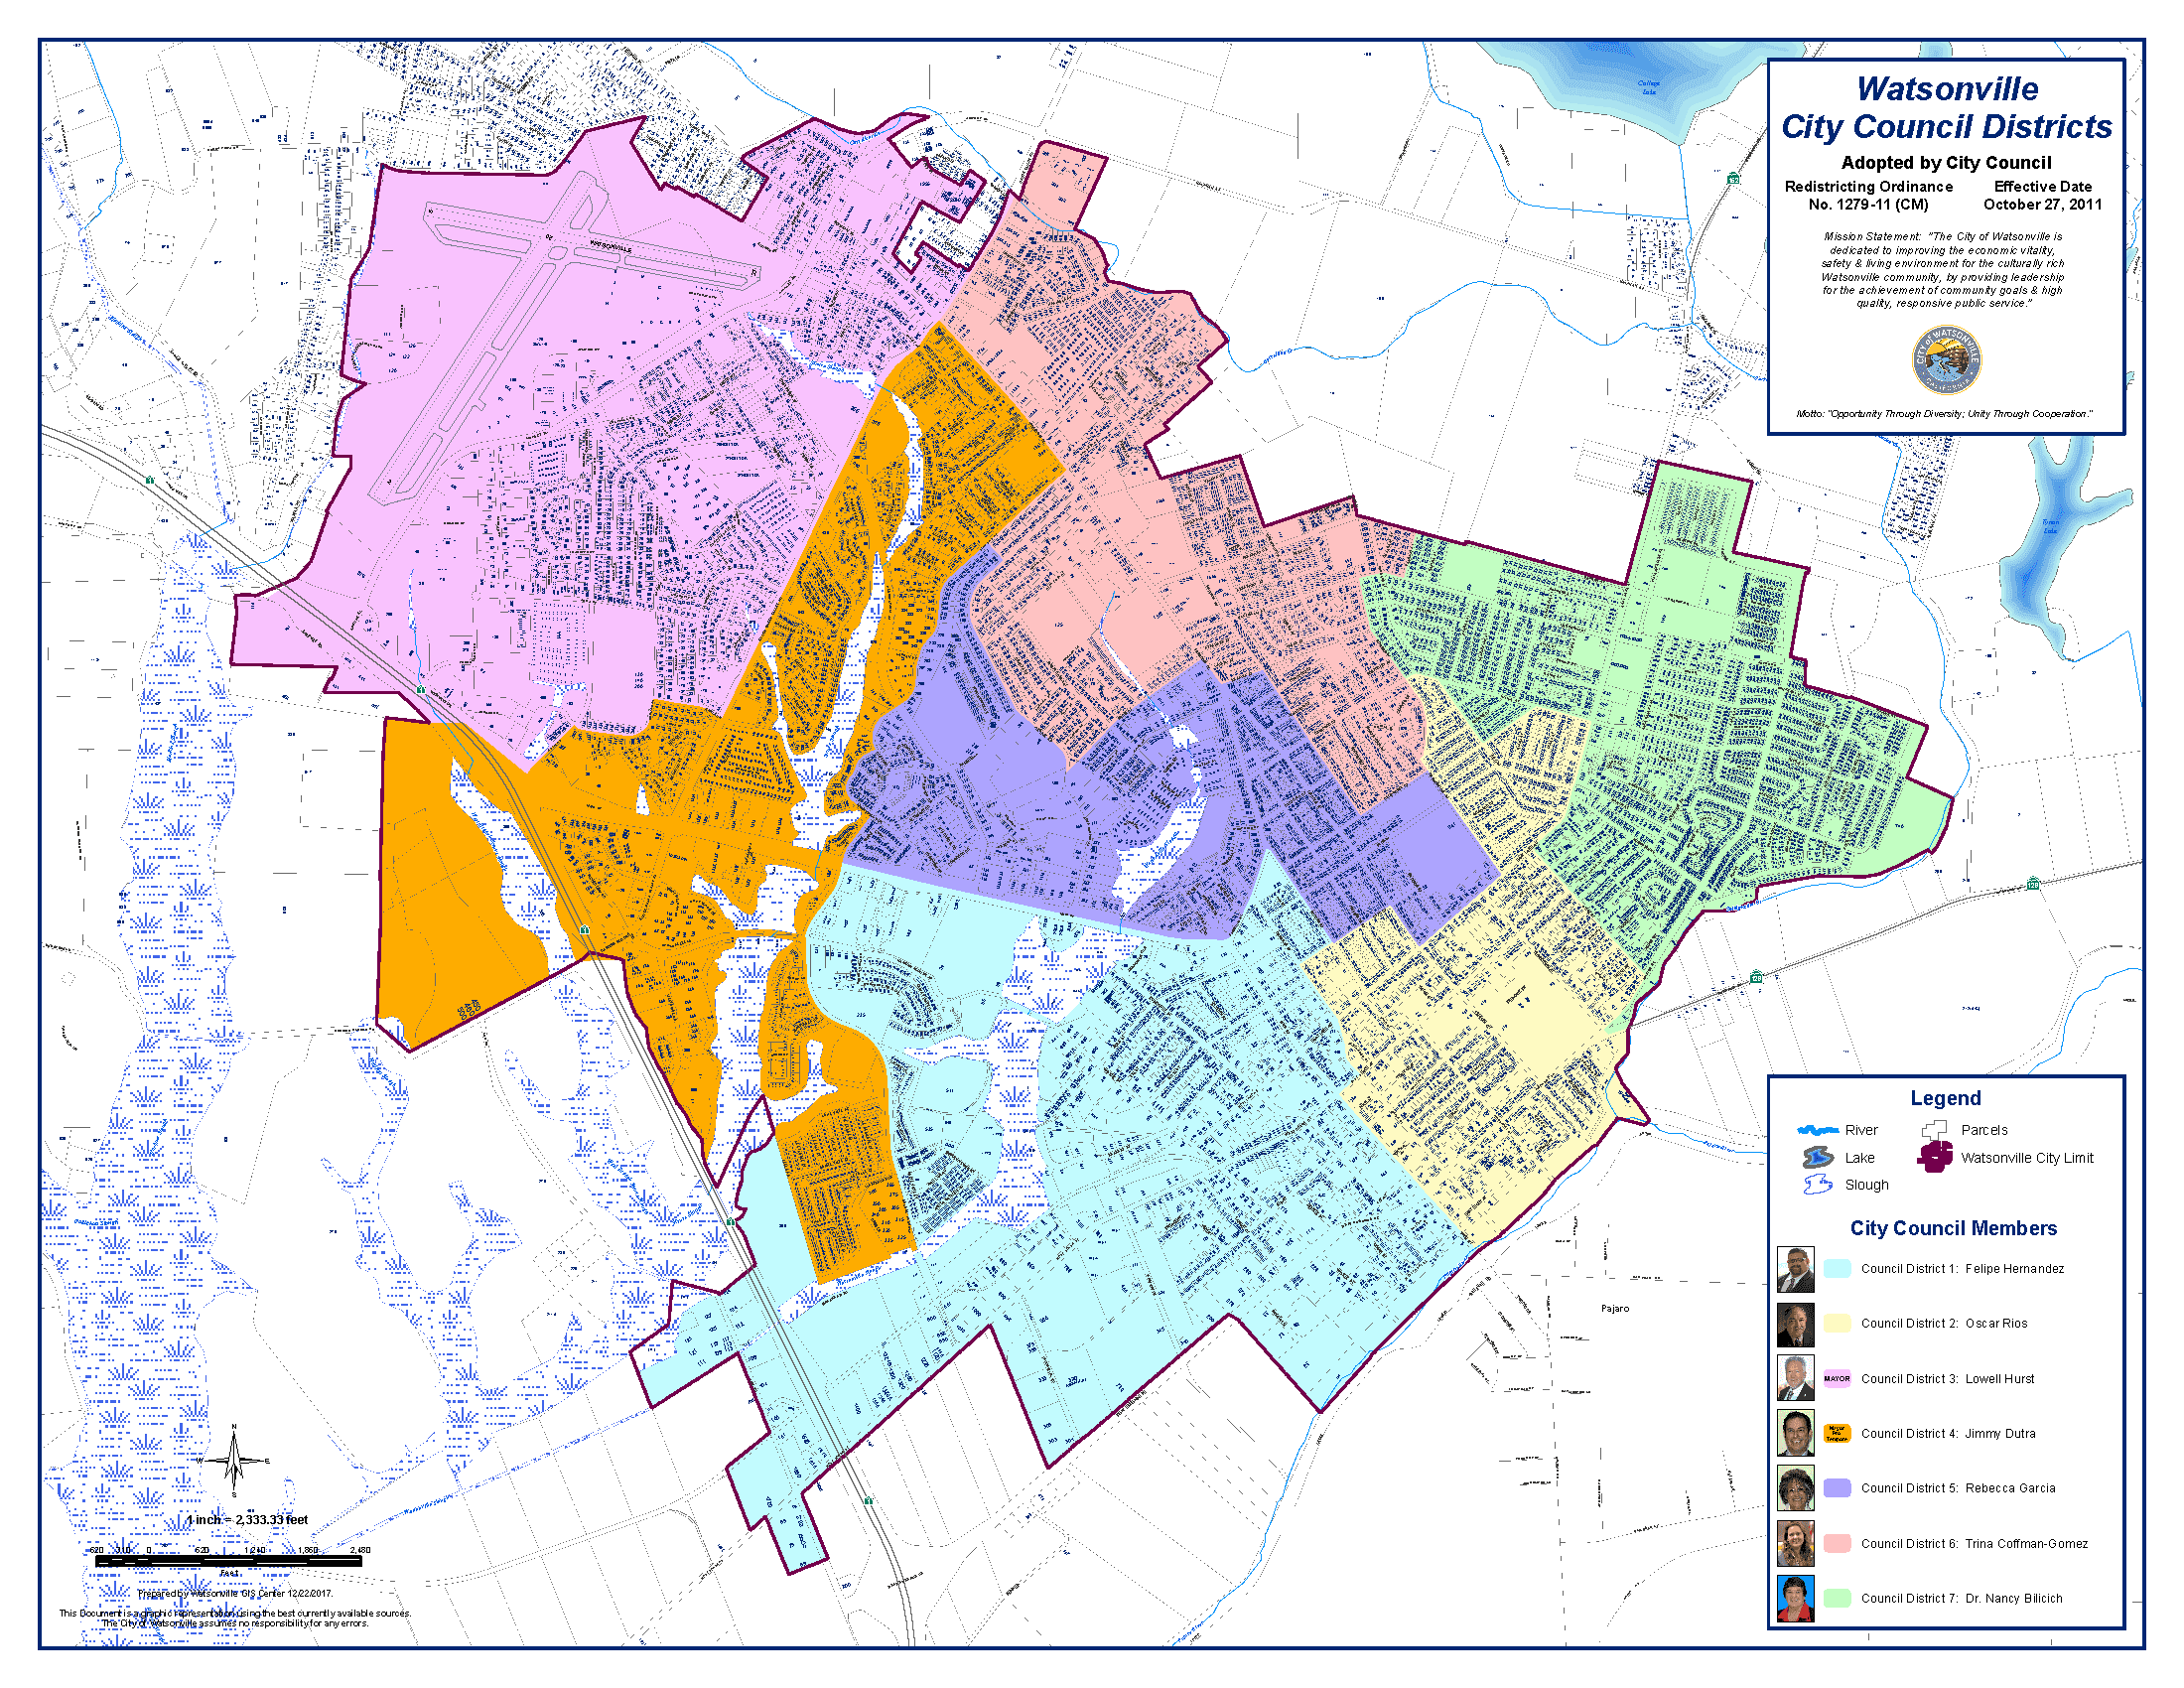 Council Districts 2018